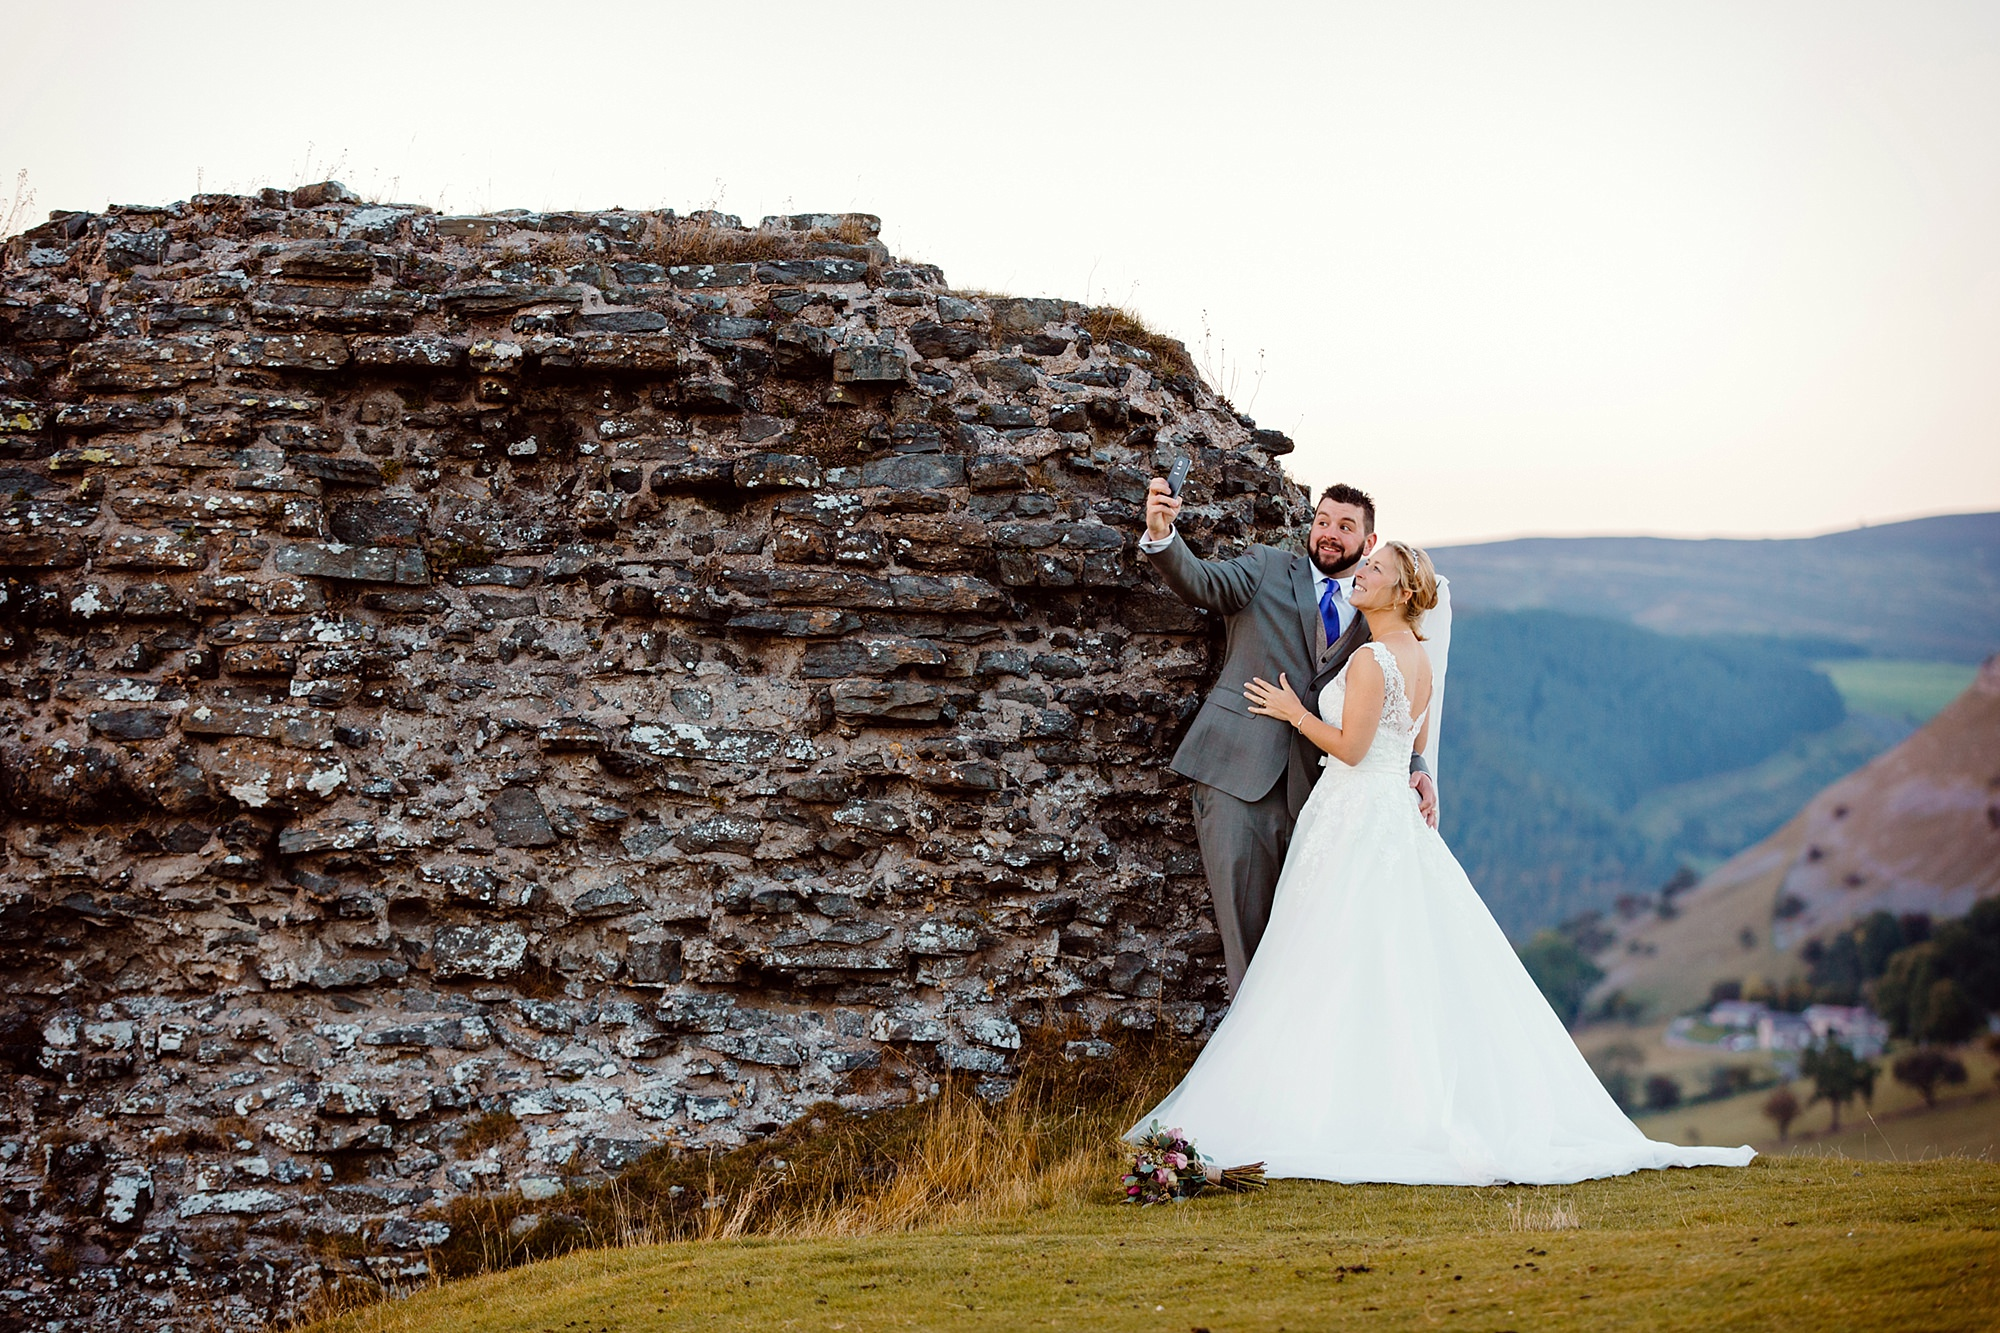 Castell dinas bran wedding photography portrait of bride and groom taking a selfie at castle ruins